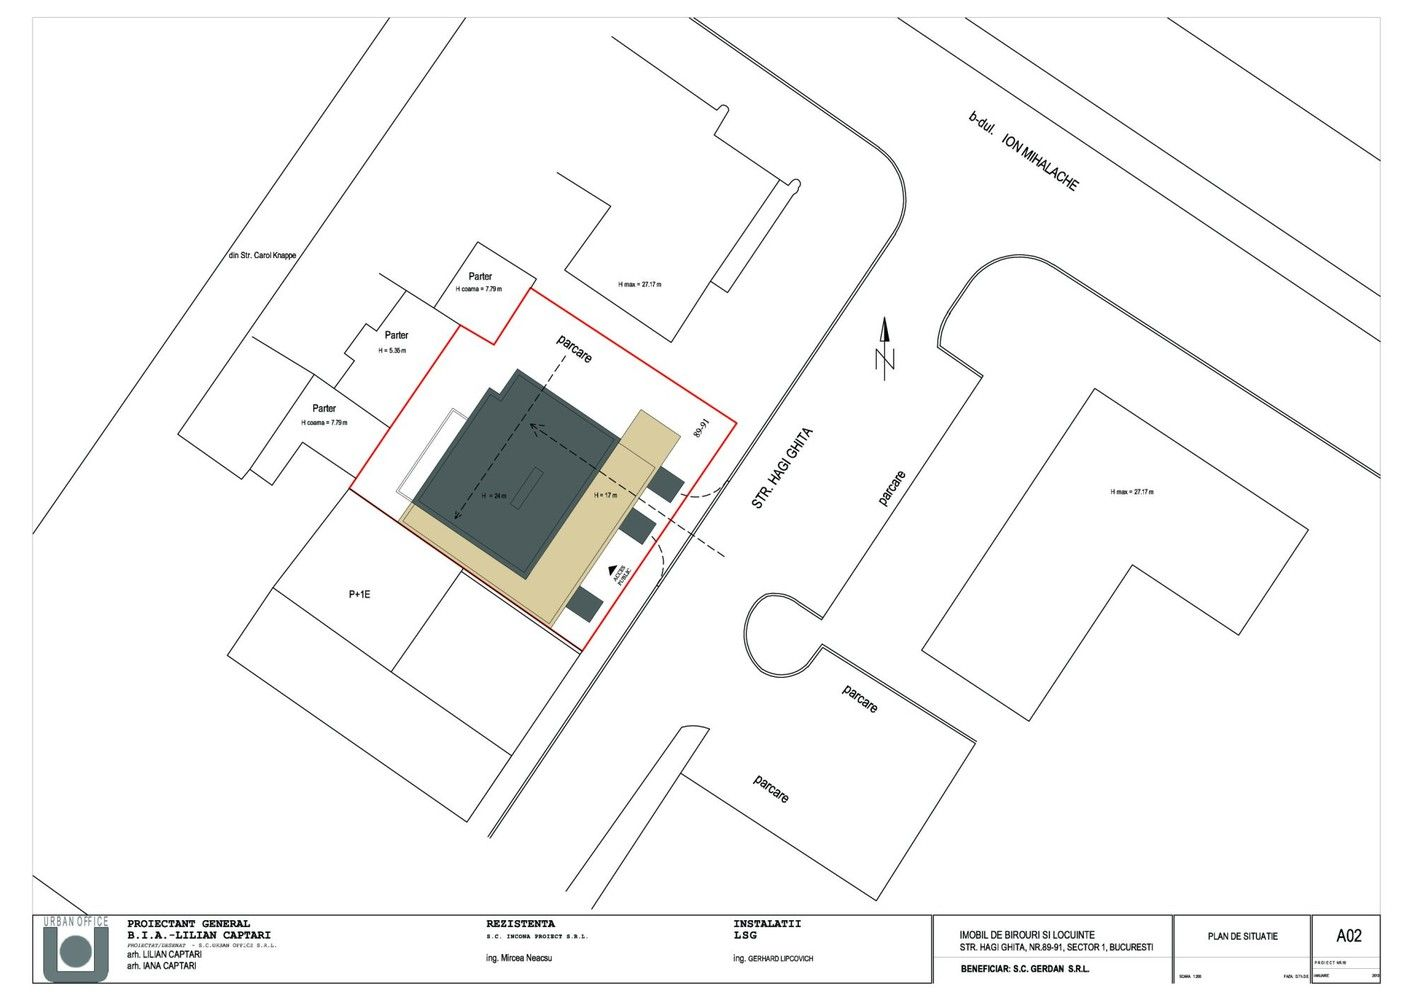 L S G Head Office Building Site Plan Office Building Office Plan Site Plan